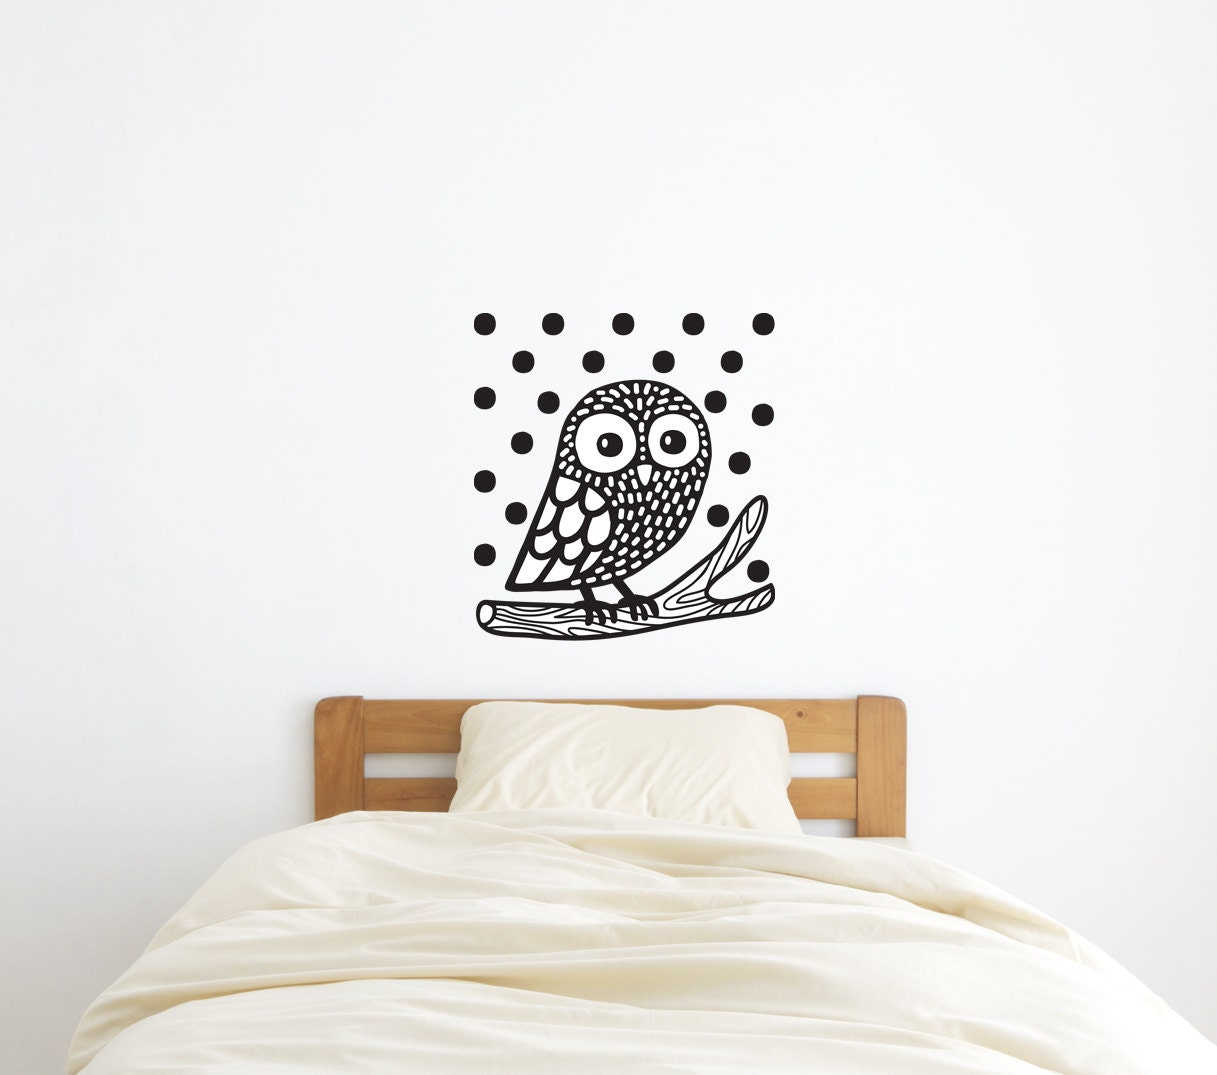 Owl Wall Decal Owl Wall Sticker Home Decor Wild